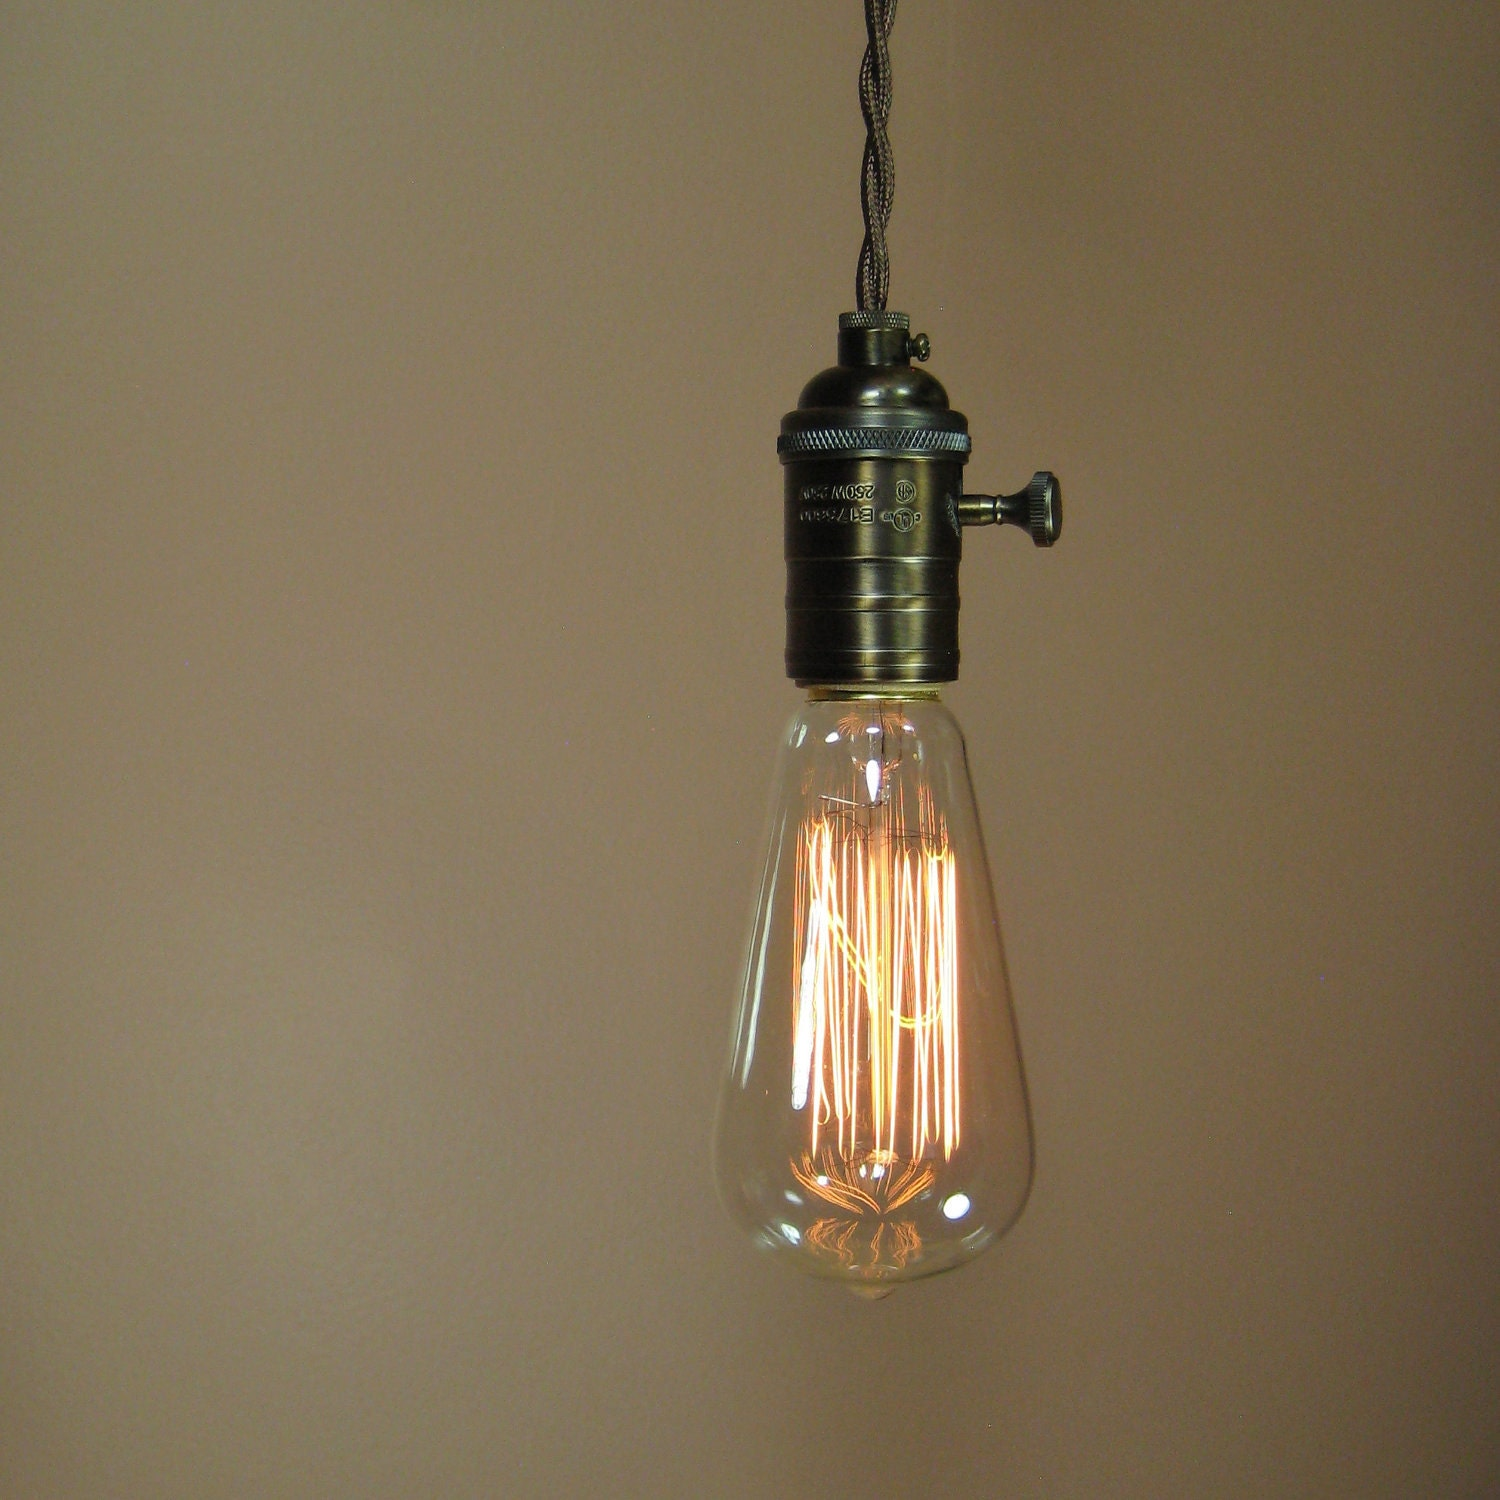 Reserved For Henry Rustic Bare Bulb Pendant Light With